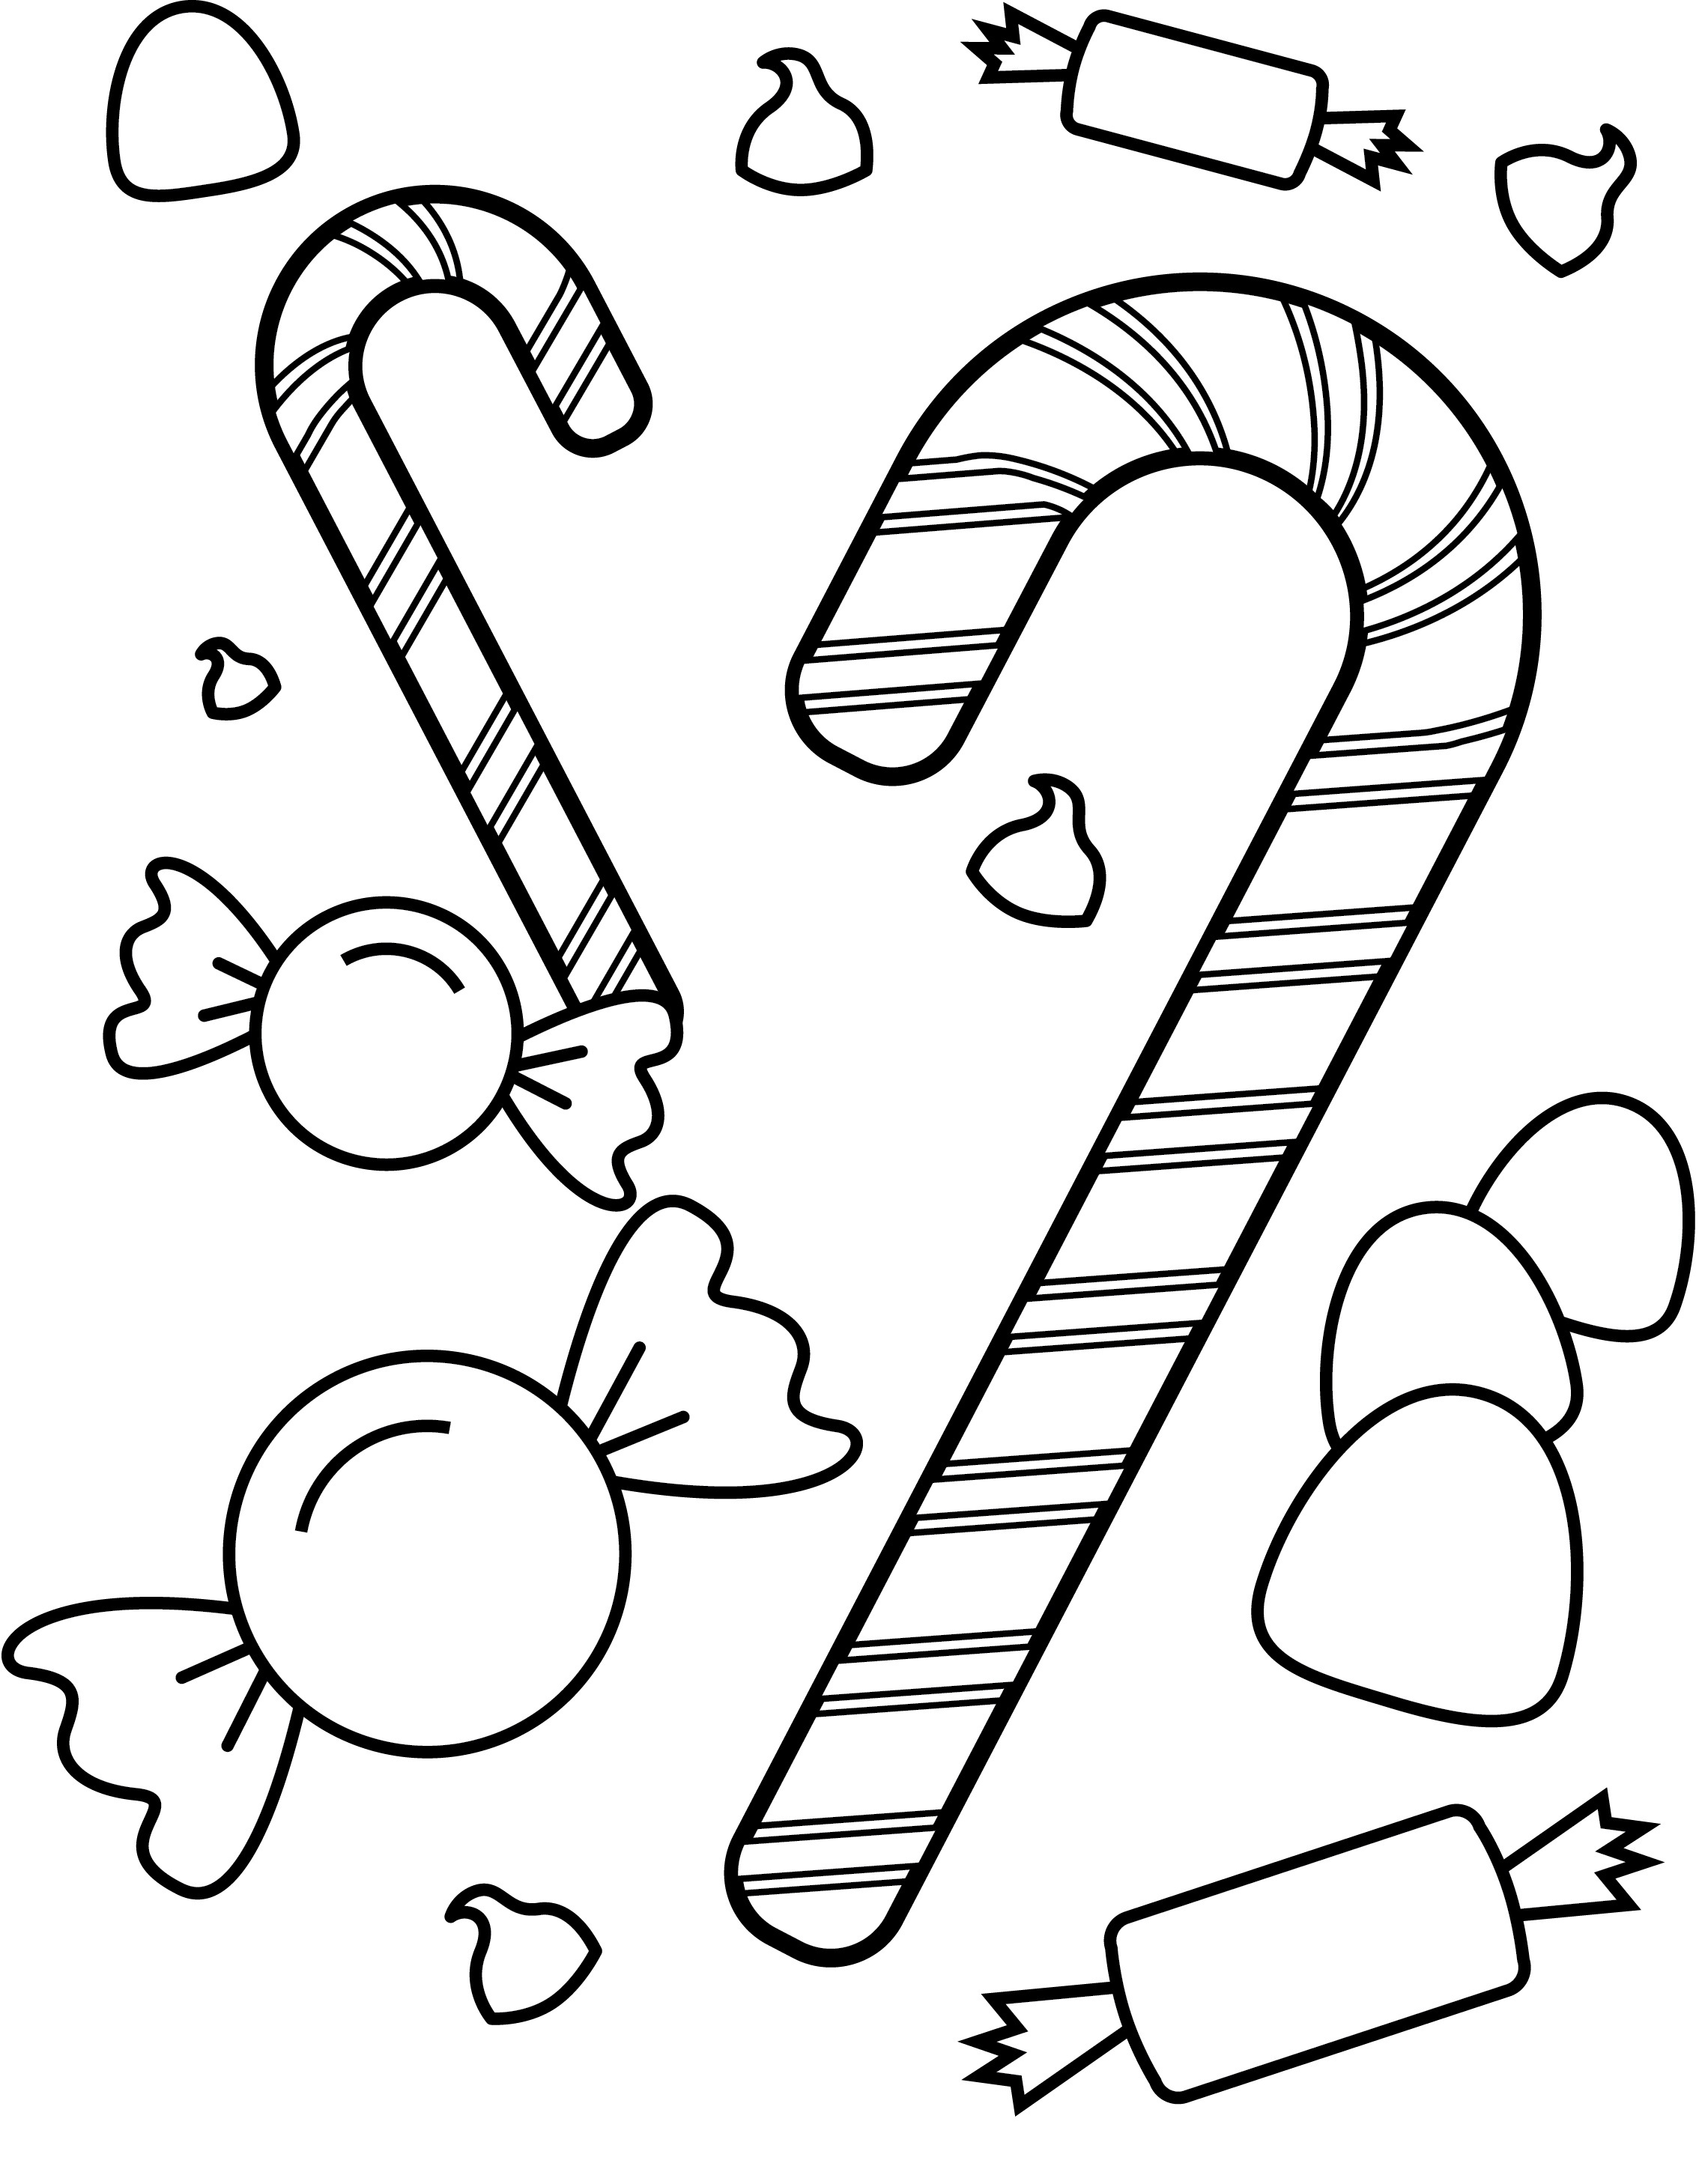 Free Printable Candy Coloring Pages For Kids Coloring Pages Chocolate